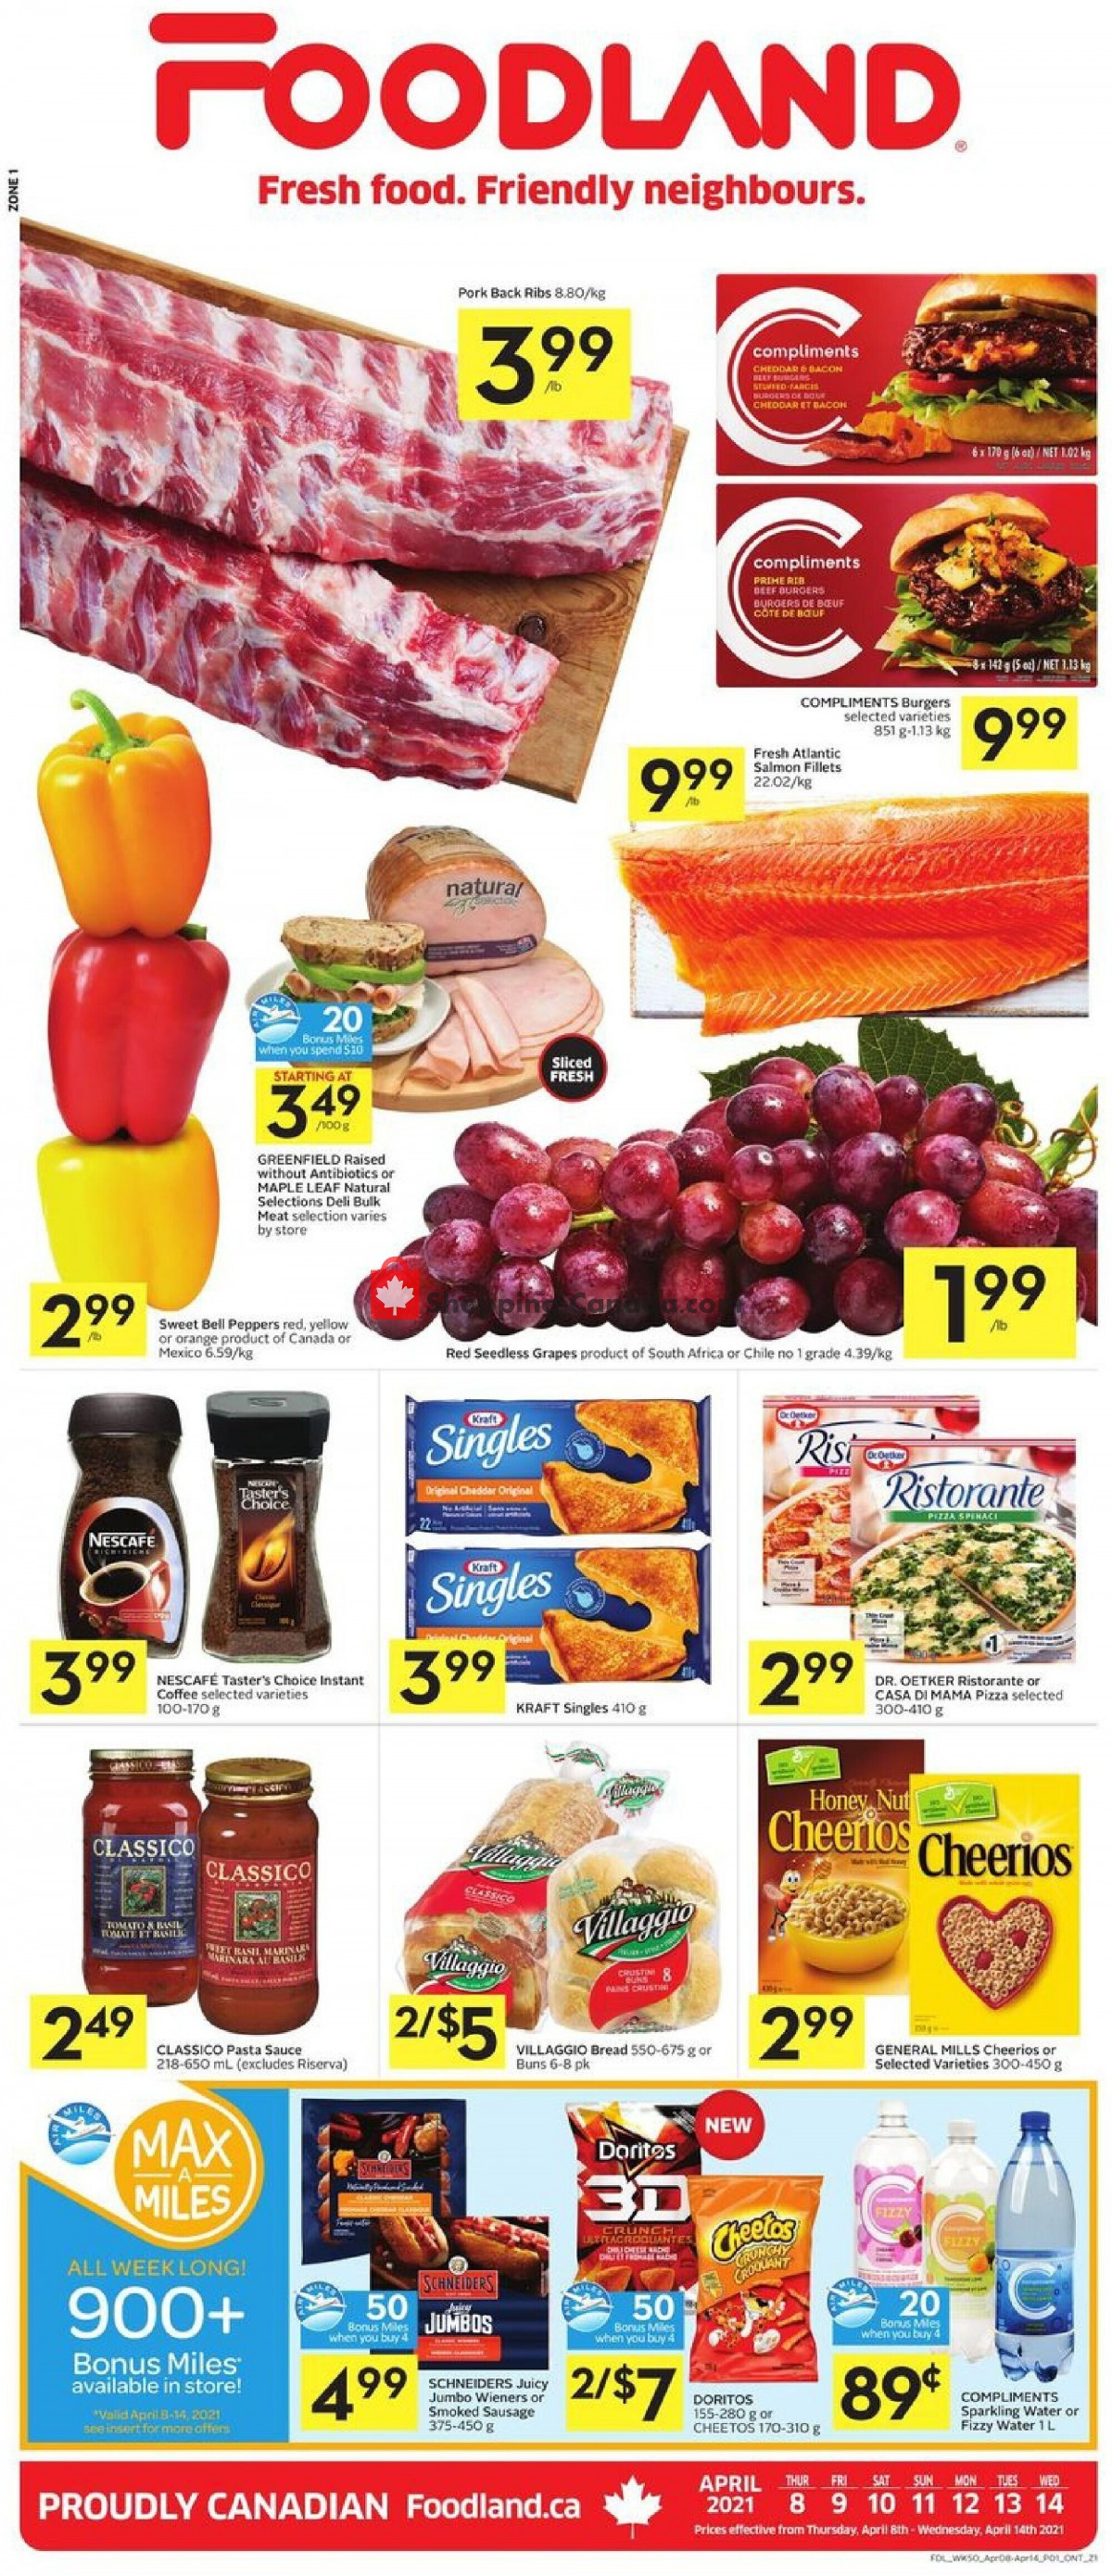 Flyer Foodland Canada - from Thursday April 8, 2021 to Wednesday April 14, 2021